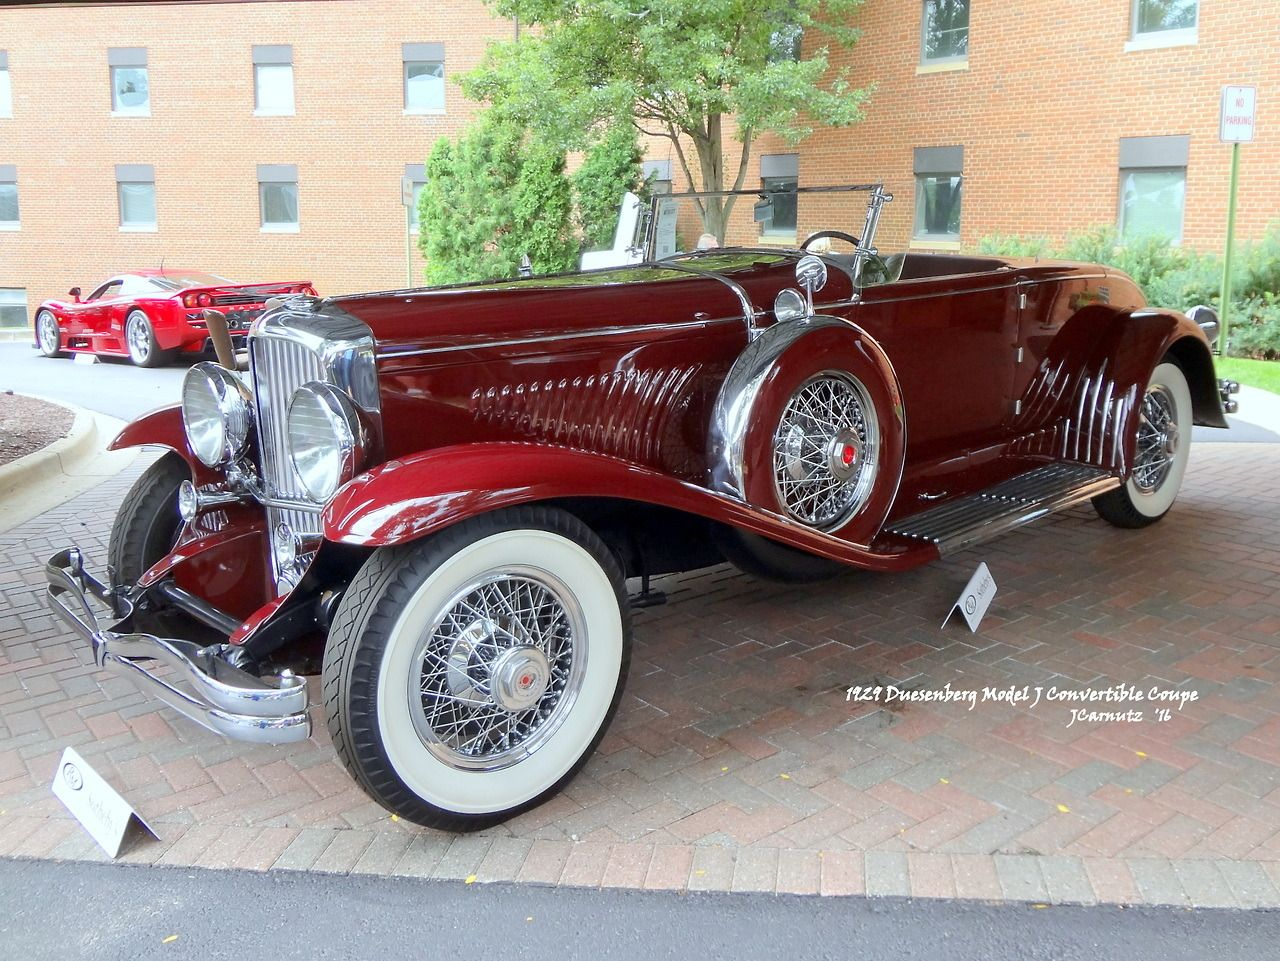 1929 Duesenberg Model J Convertible Coupe The 2016 RM